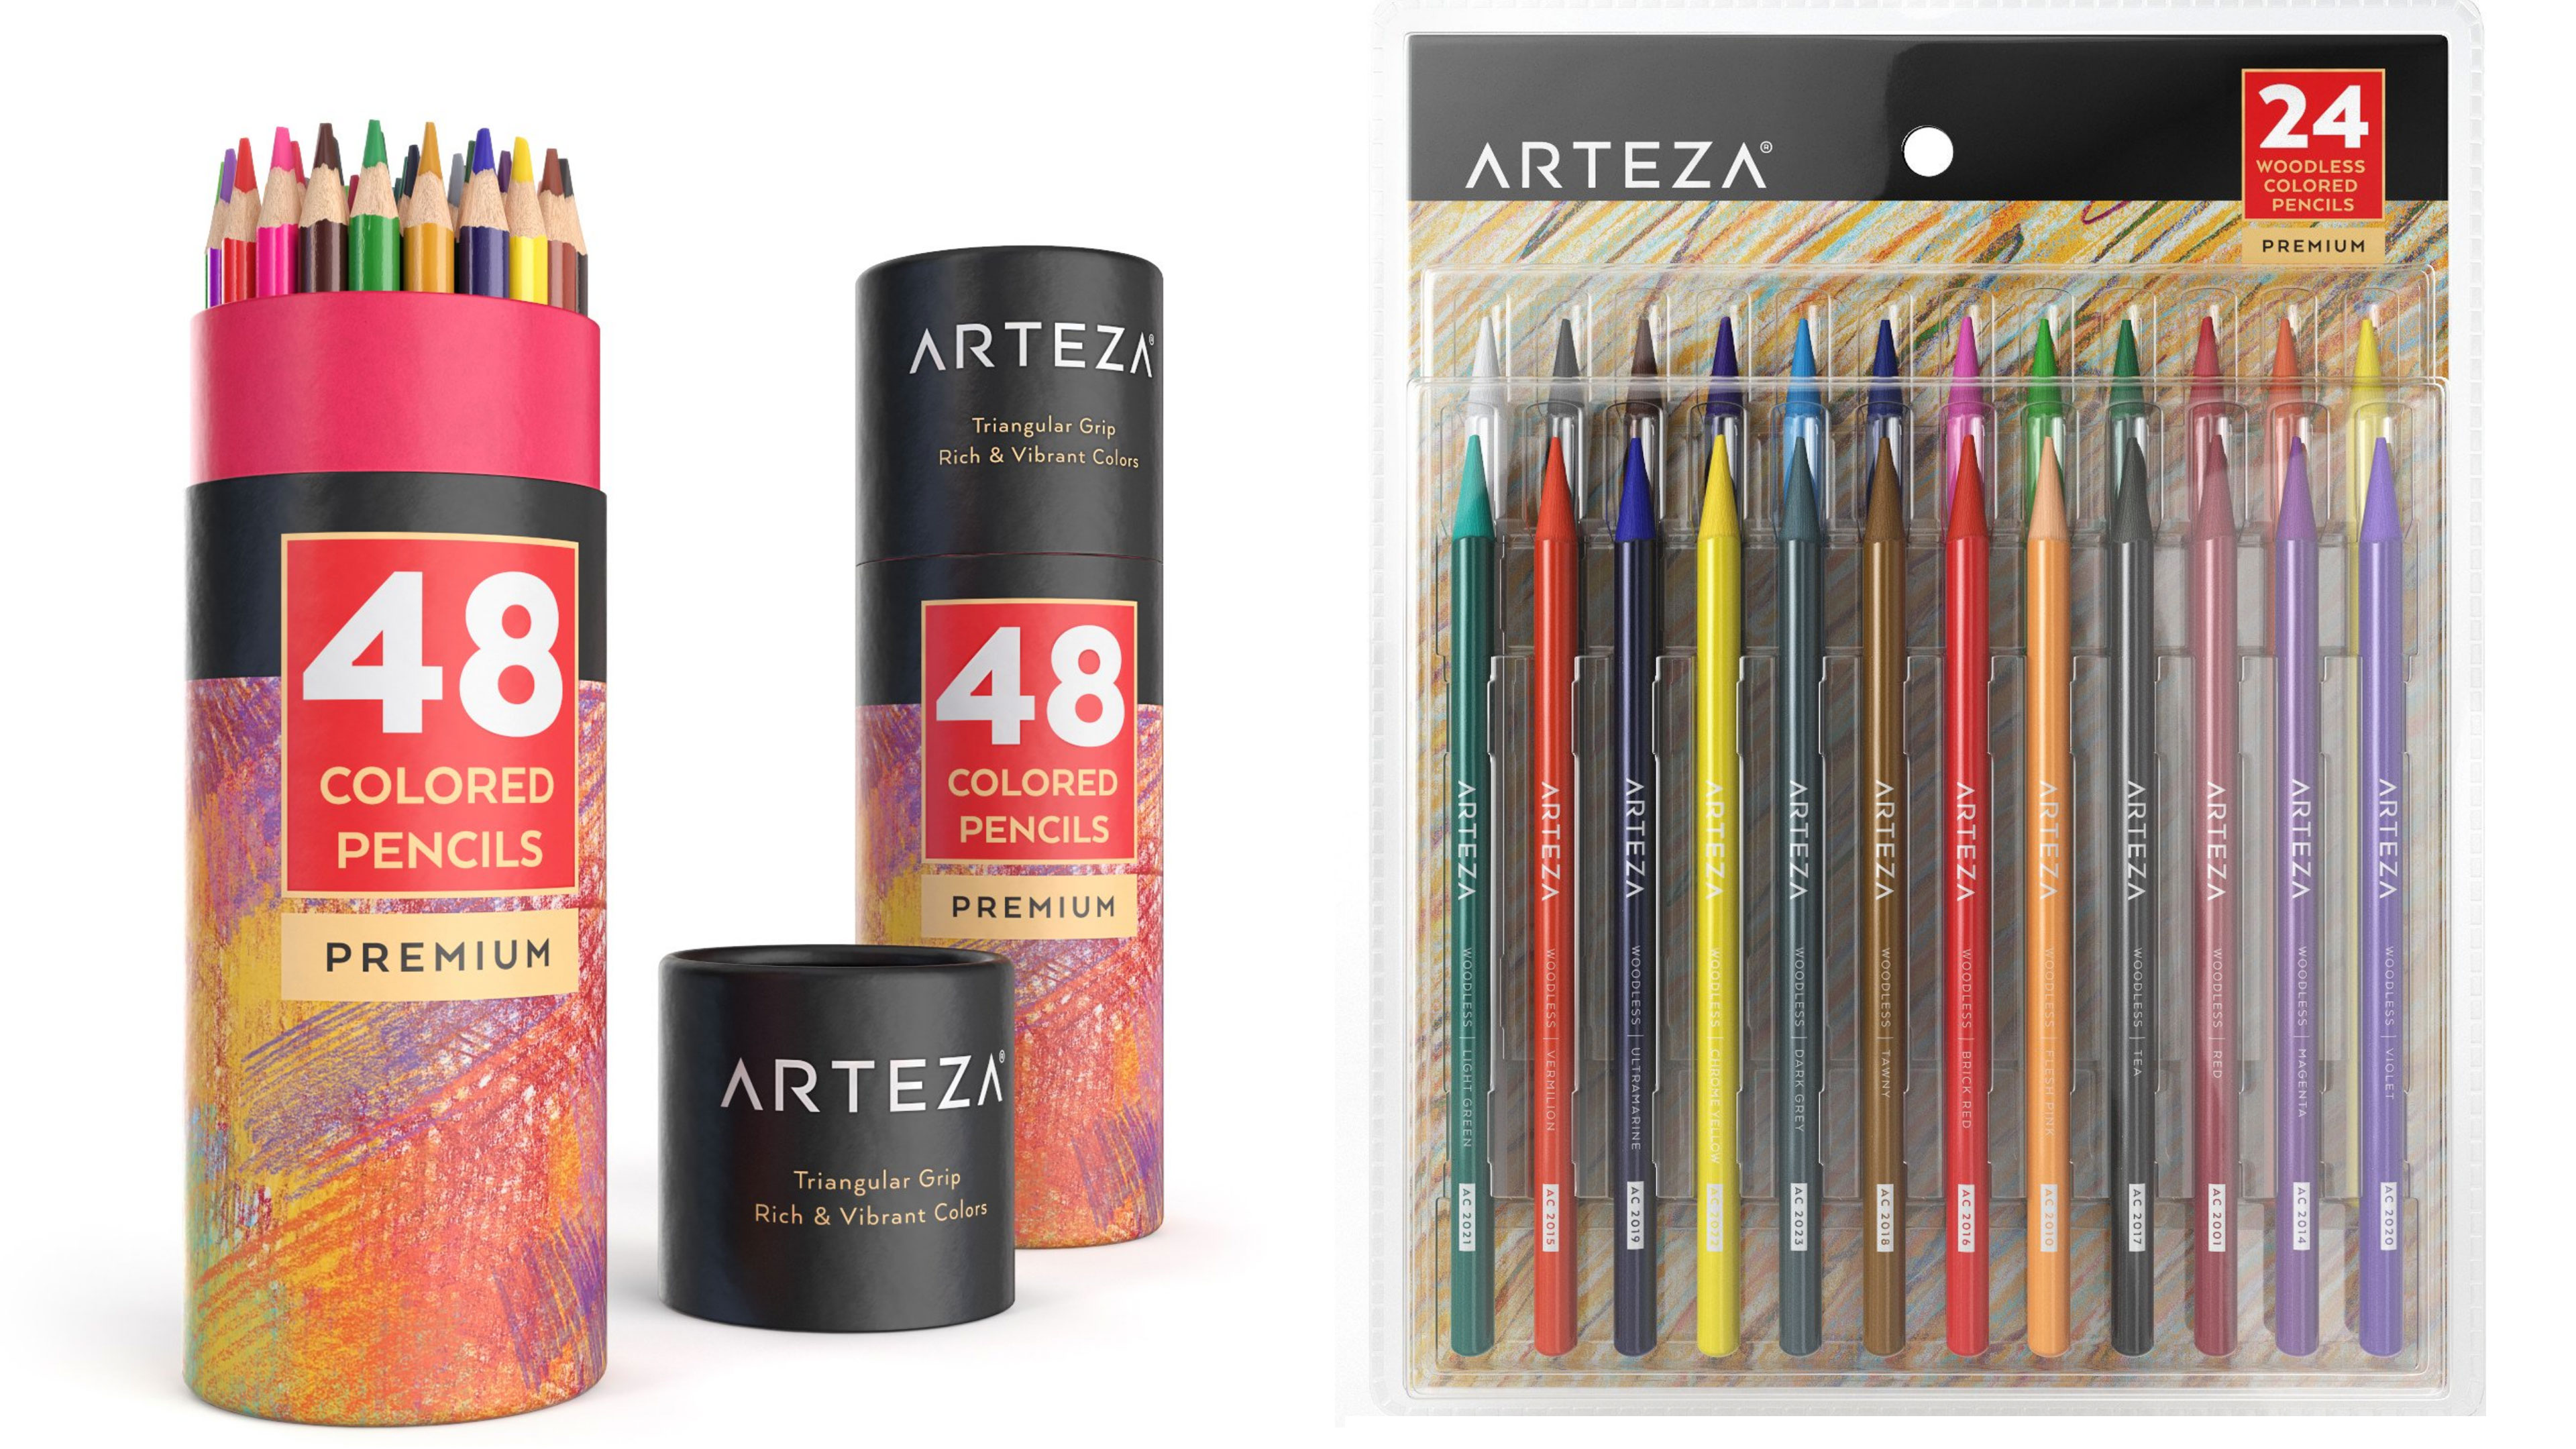 Arteza Address Product Review Demo Arteza Colored Pencils How To Draw